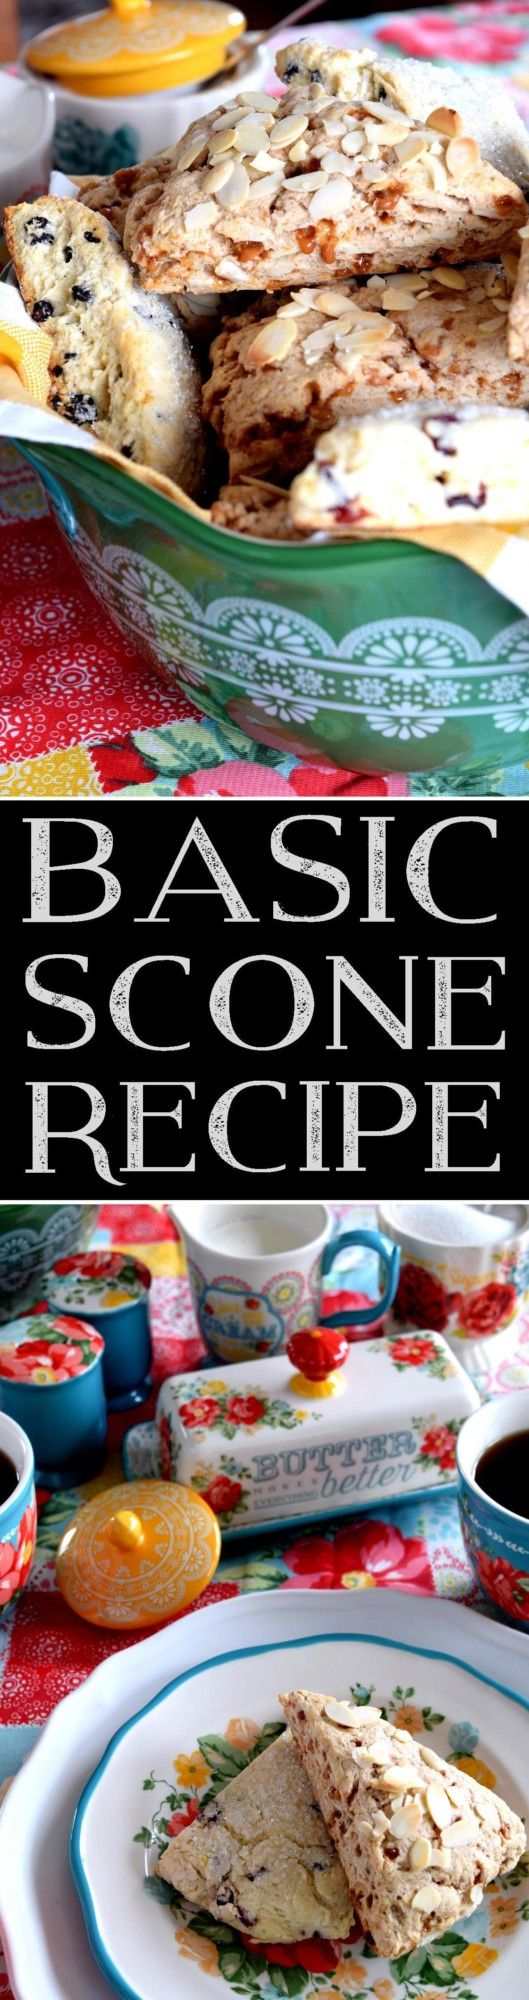 Basic Scone Recipe - Lord Byron's Kitchen